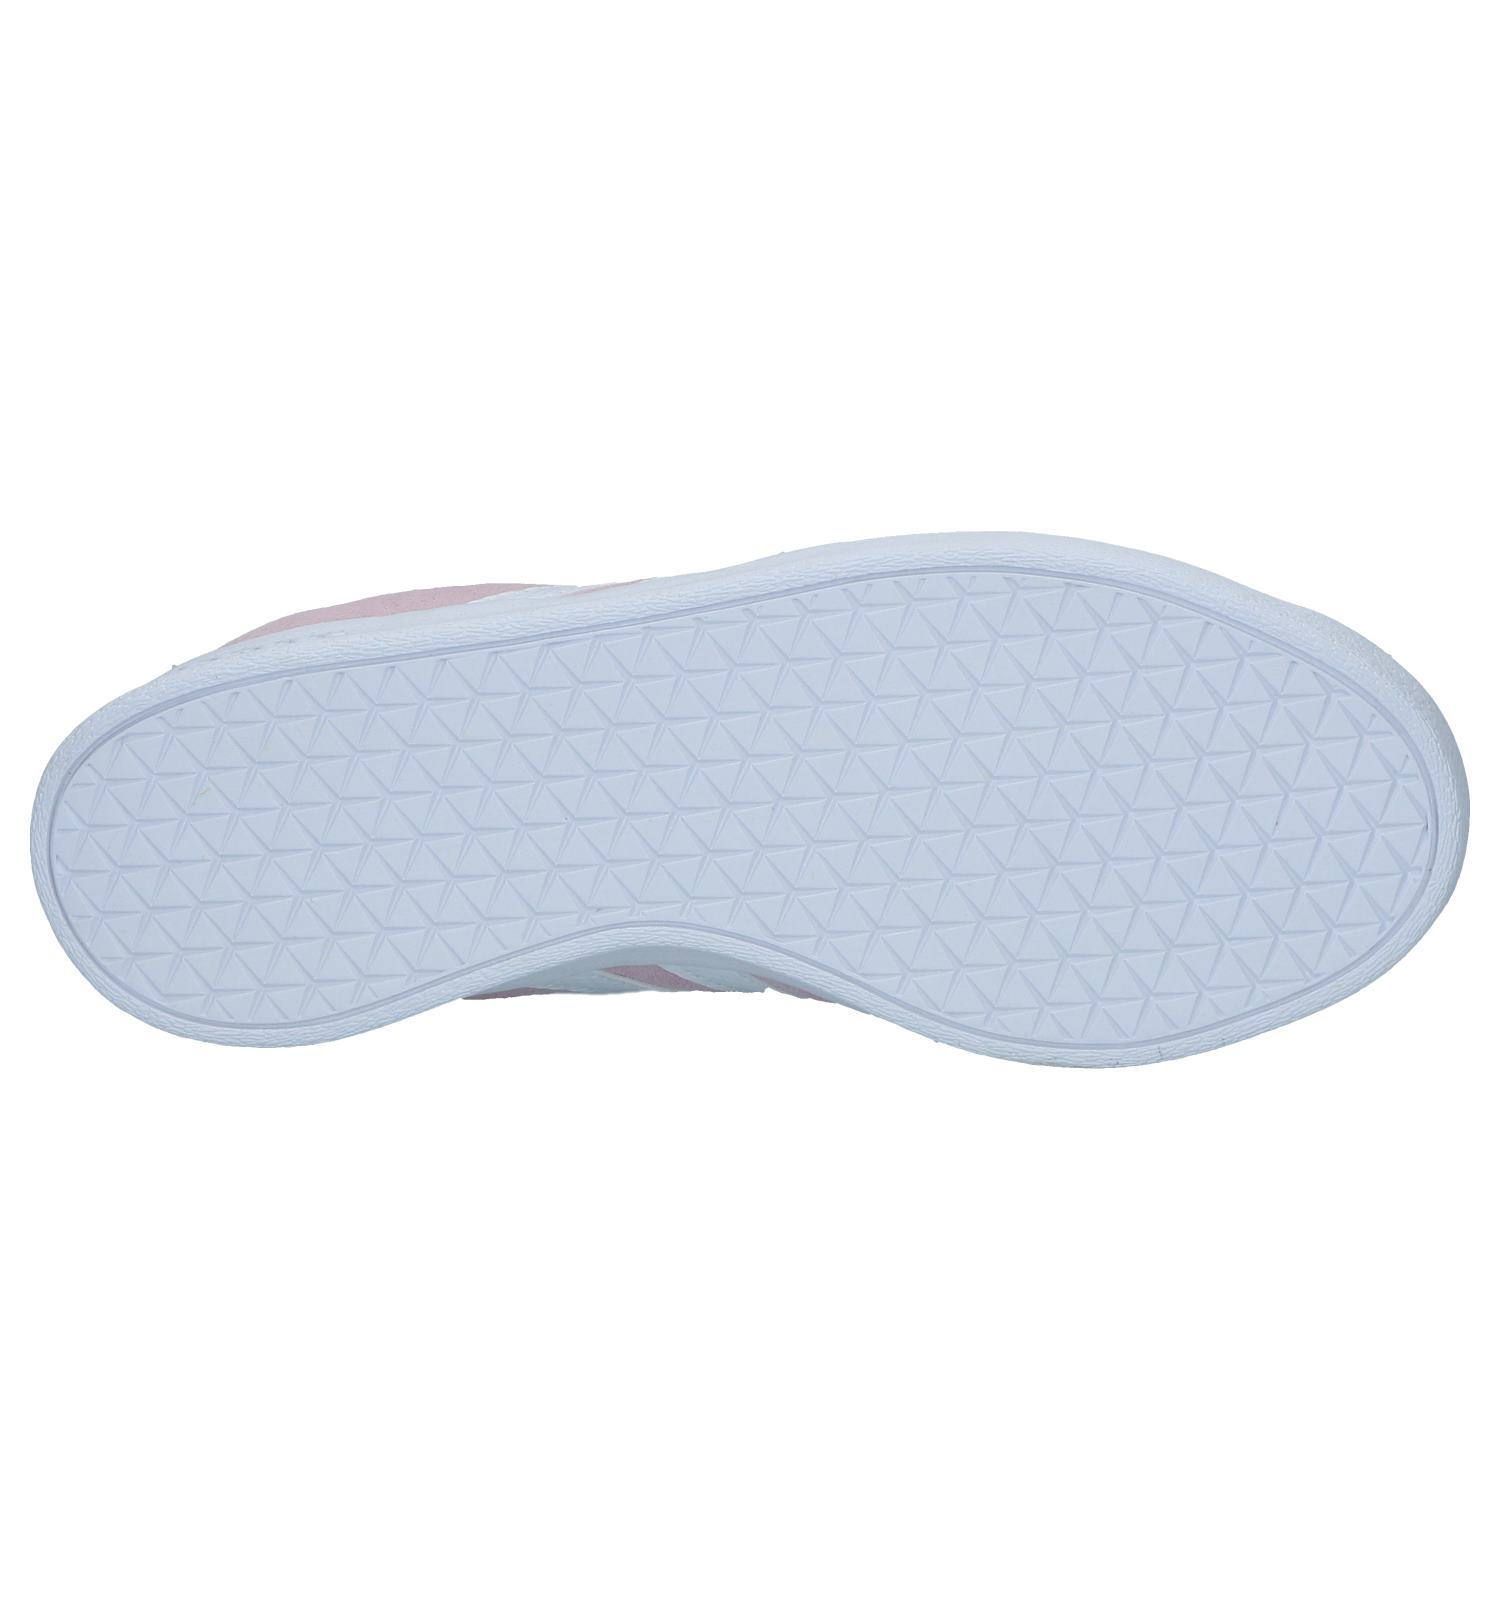 Lichtroze Lage Court Sneakers Vl 0 Adidas 2 0Okw8Pn